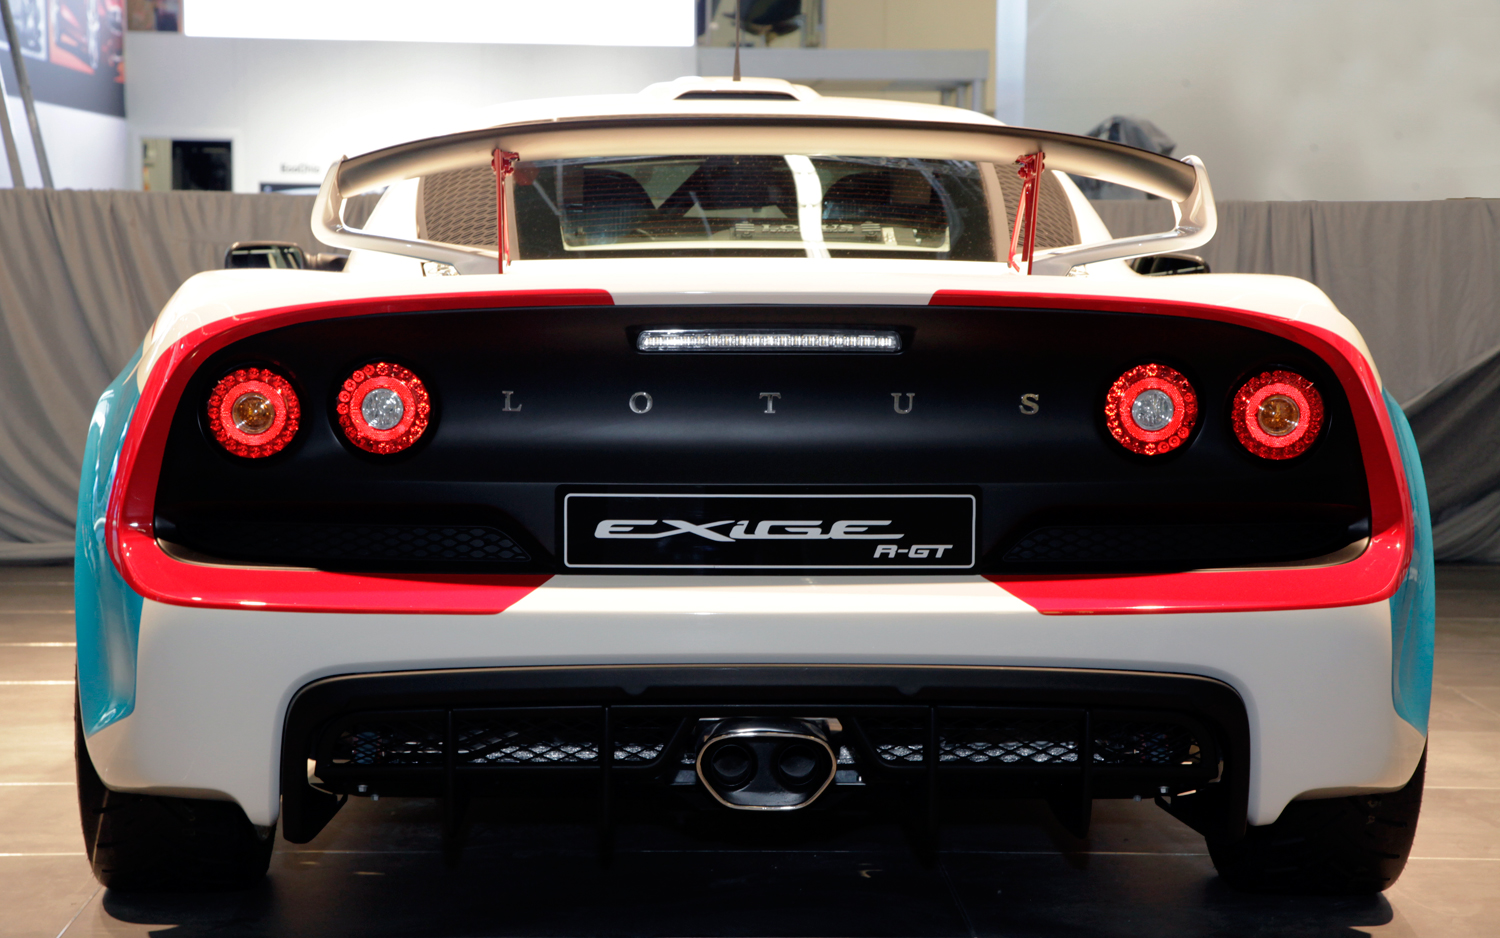 2012 Lotus Exige R Gt Rear Photo on September 14, 2011 #117729 ...